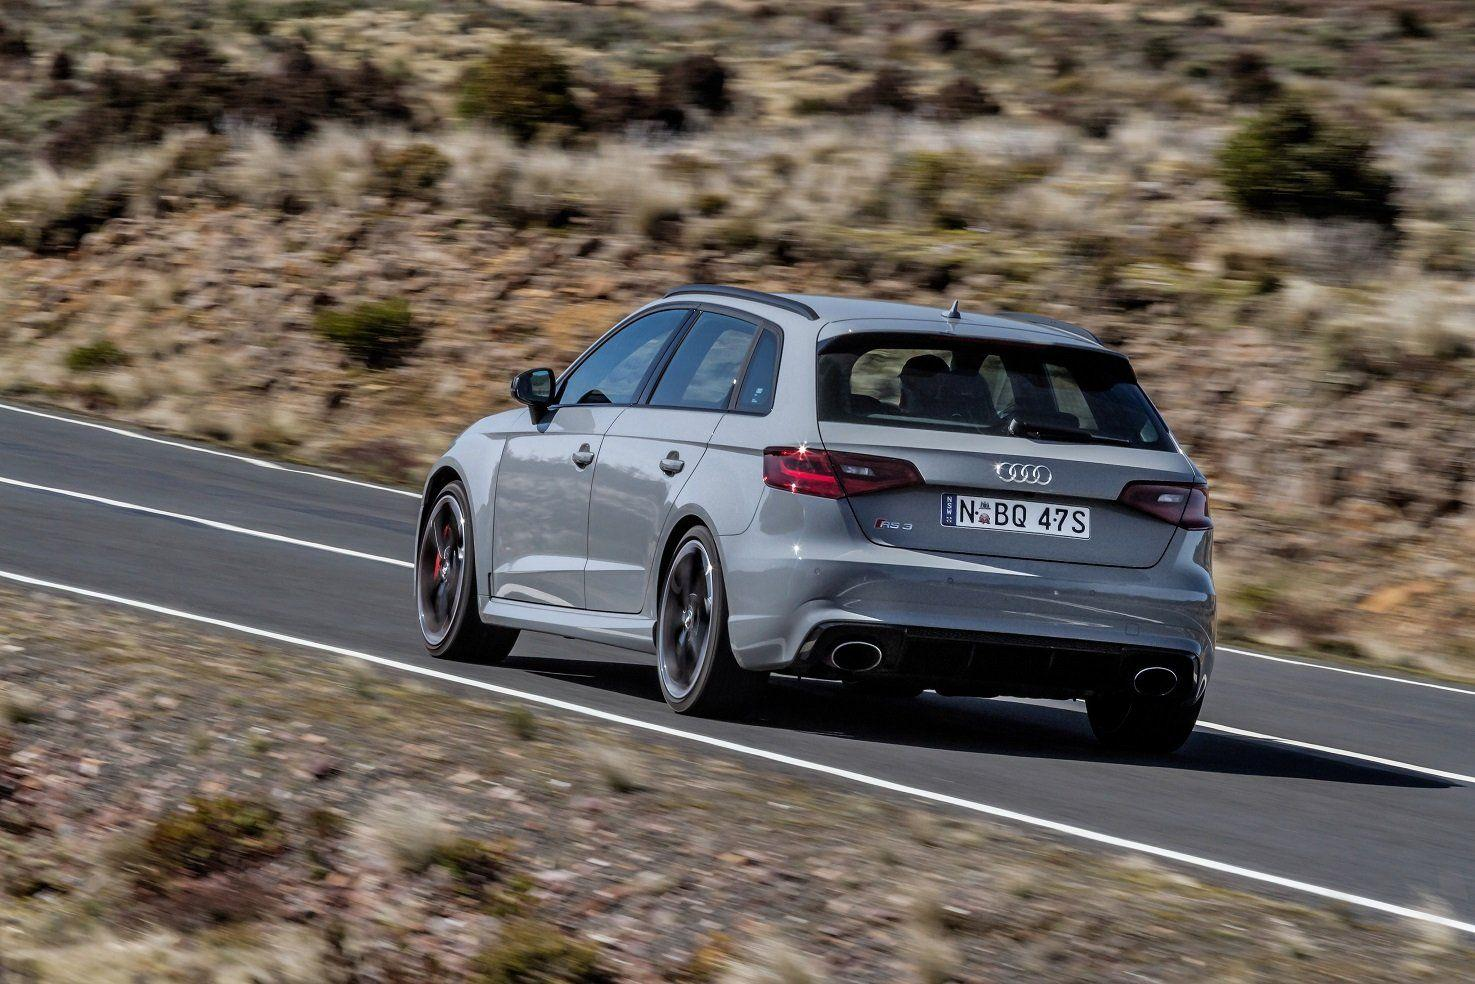 Audi RS3 Sportback AU-spec (8V) cars 2015 wallpaper | 1475x984 ...